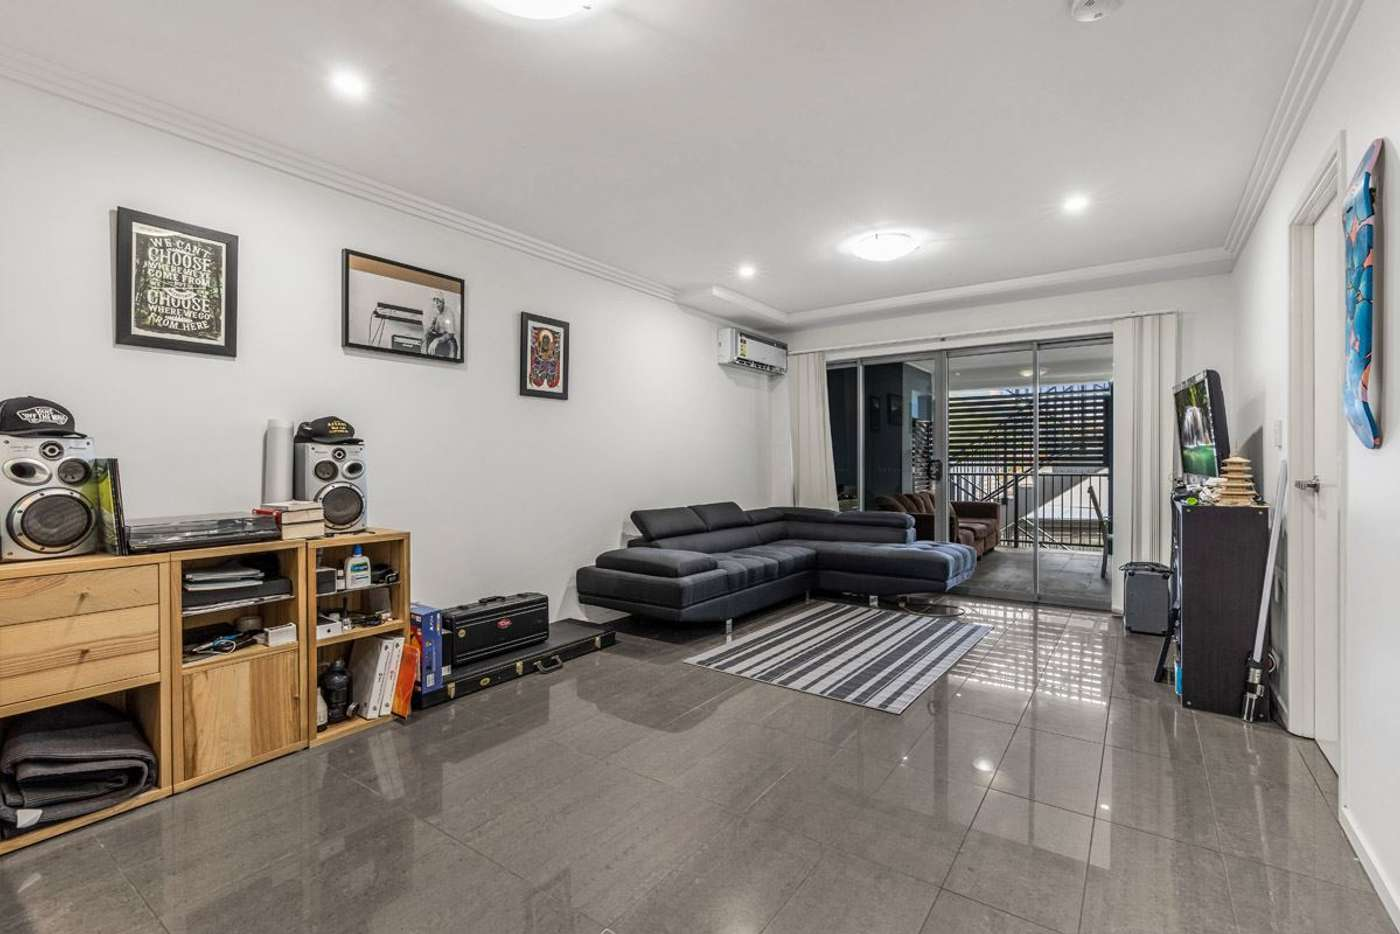 Main view of Homely apartment listing, 2/82 Grenfell Street, Mount Gravatt QLD 4122